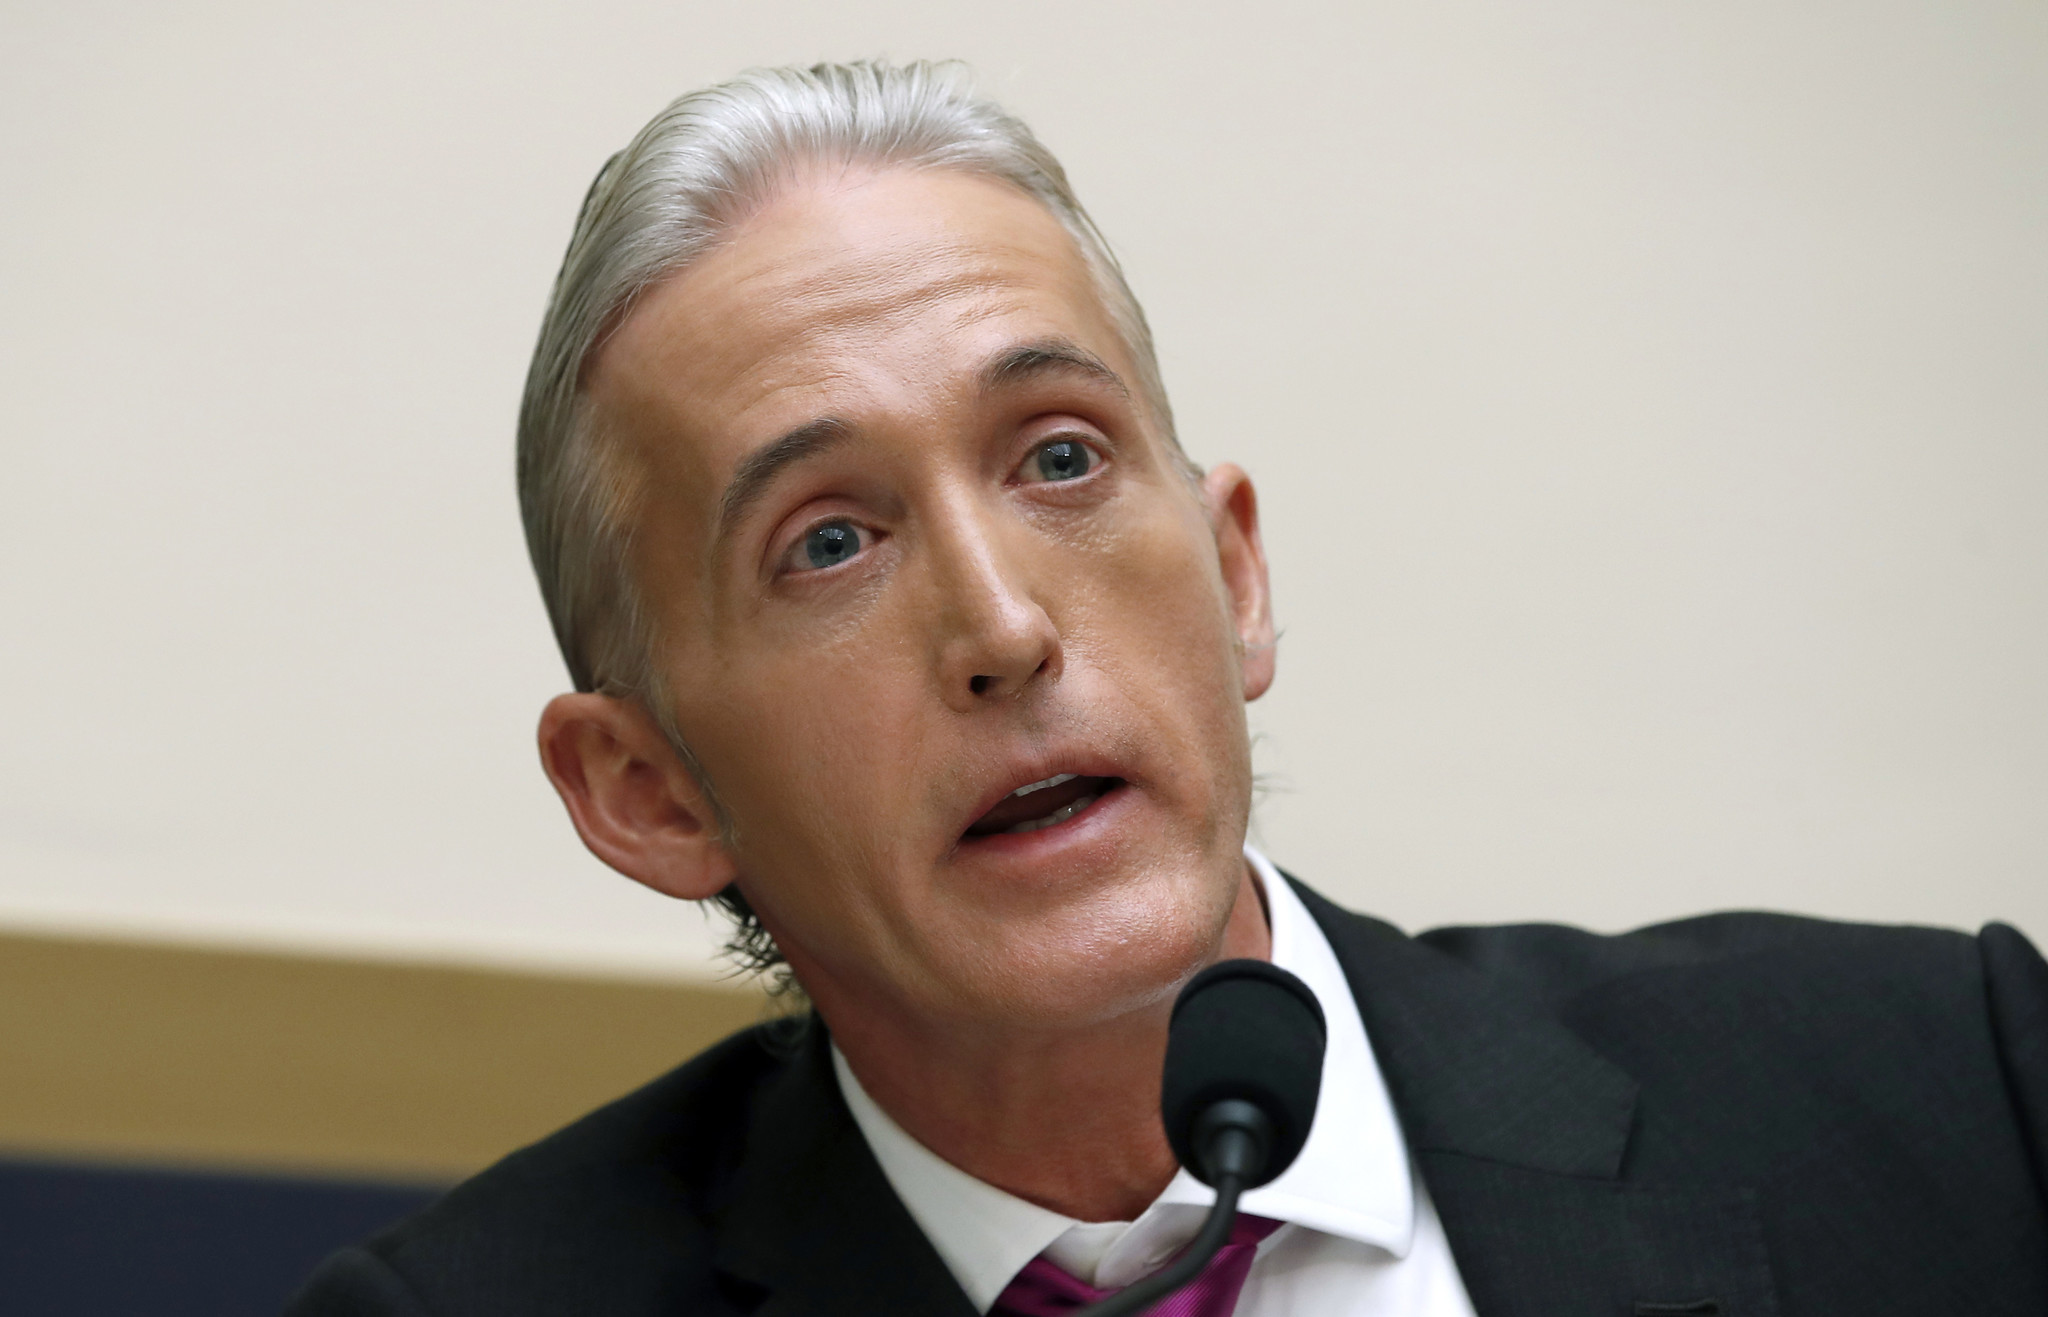 Republican Rep. Trey Gowdy disputes Trump's 'spy' claim ...